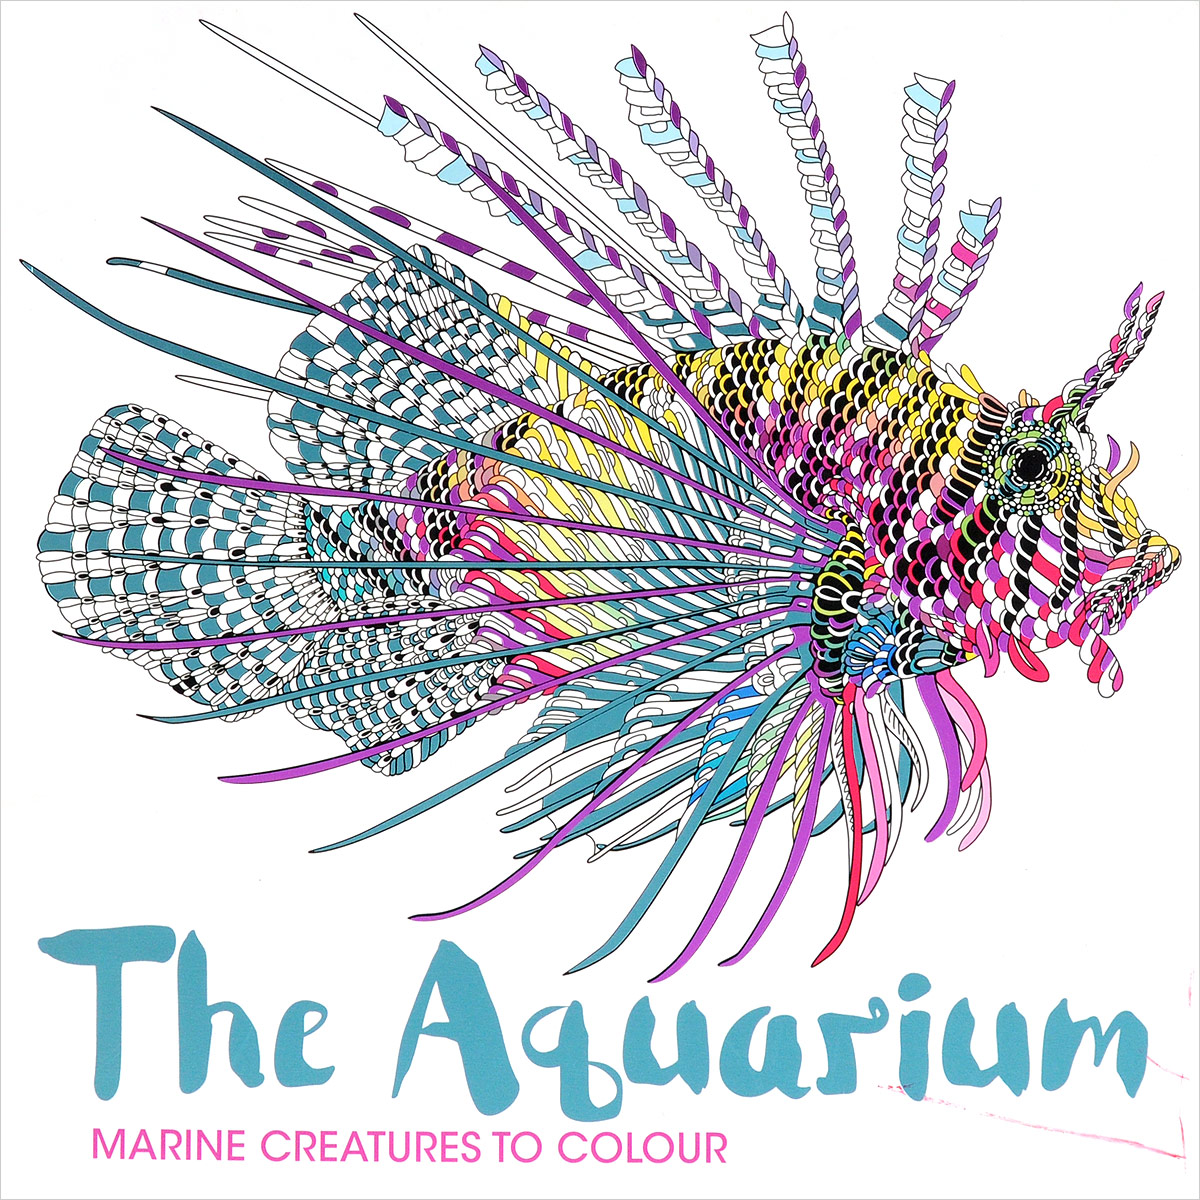 The Aquarium: Marine Creatures to Colour knights and castles to colour